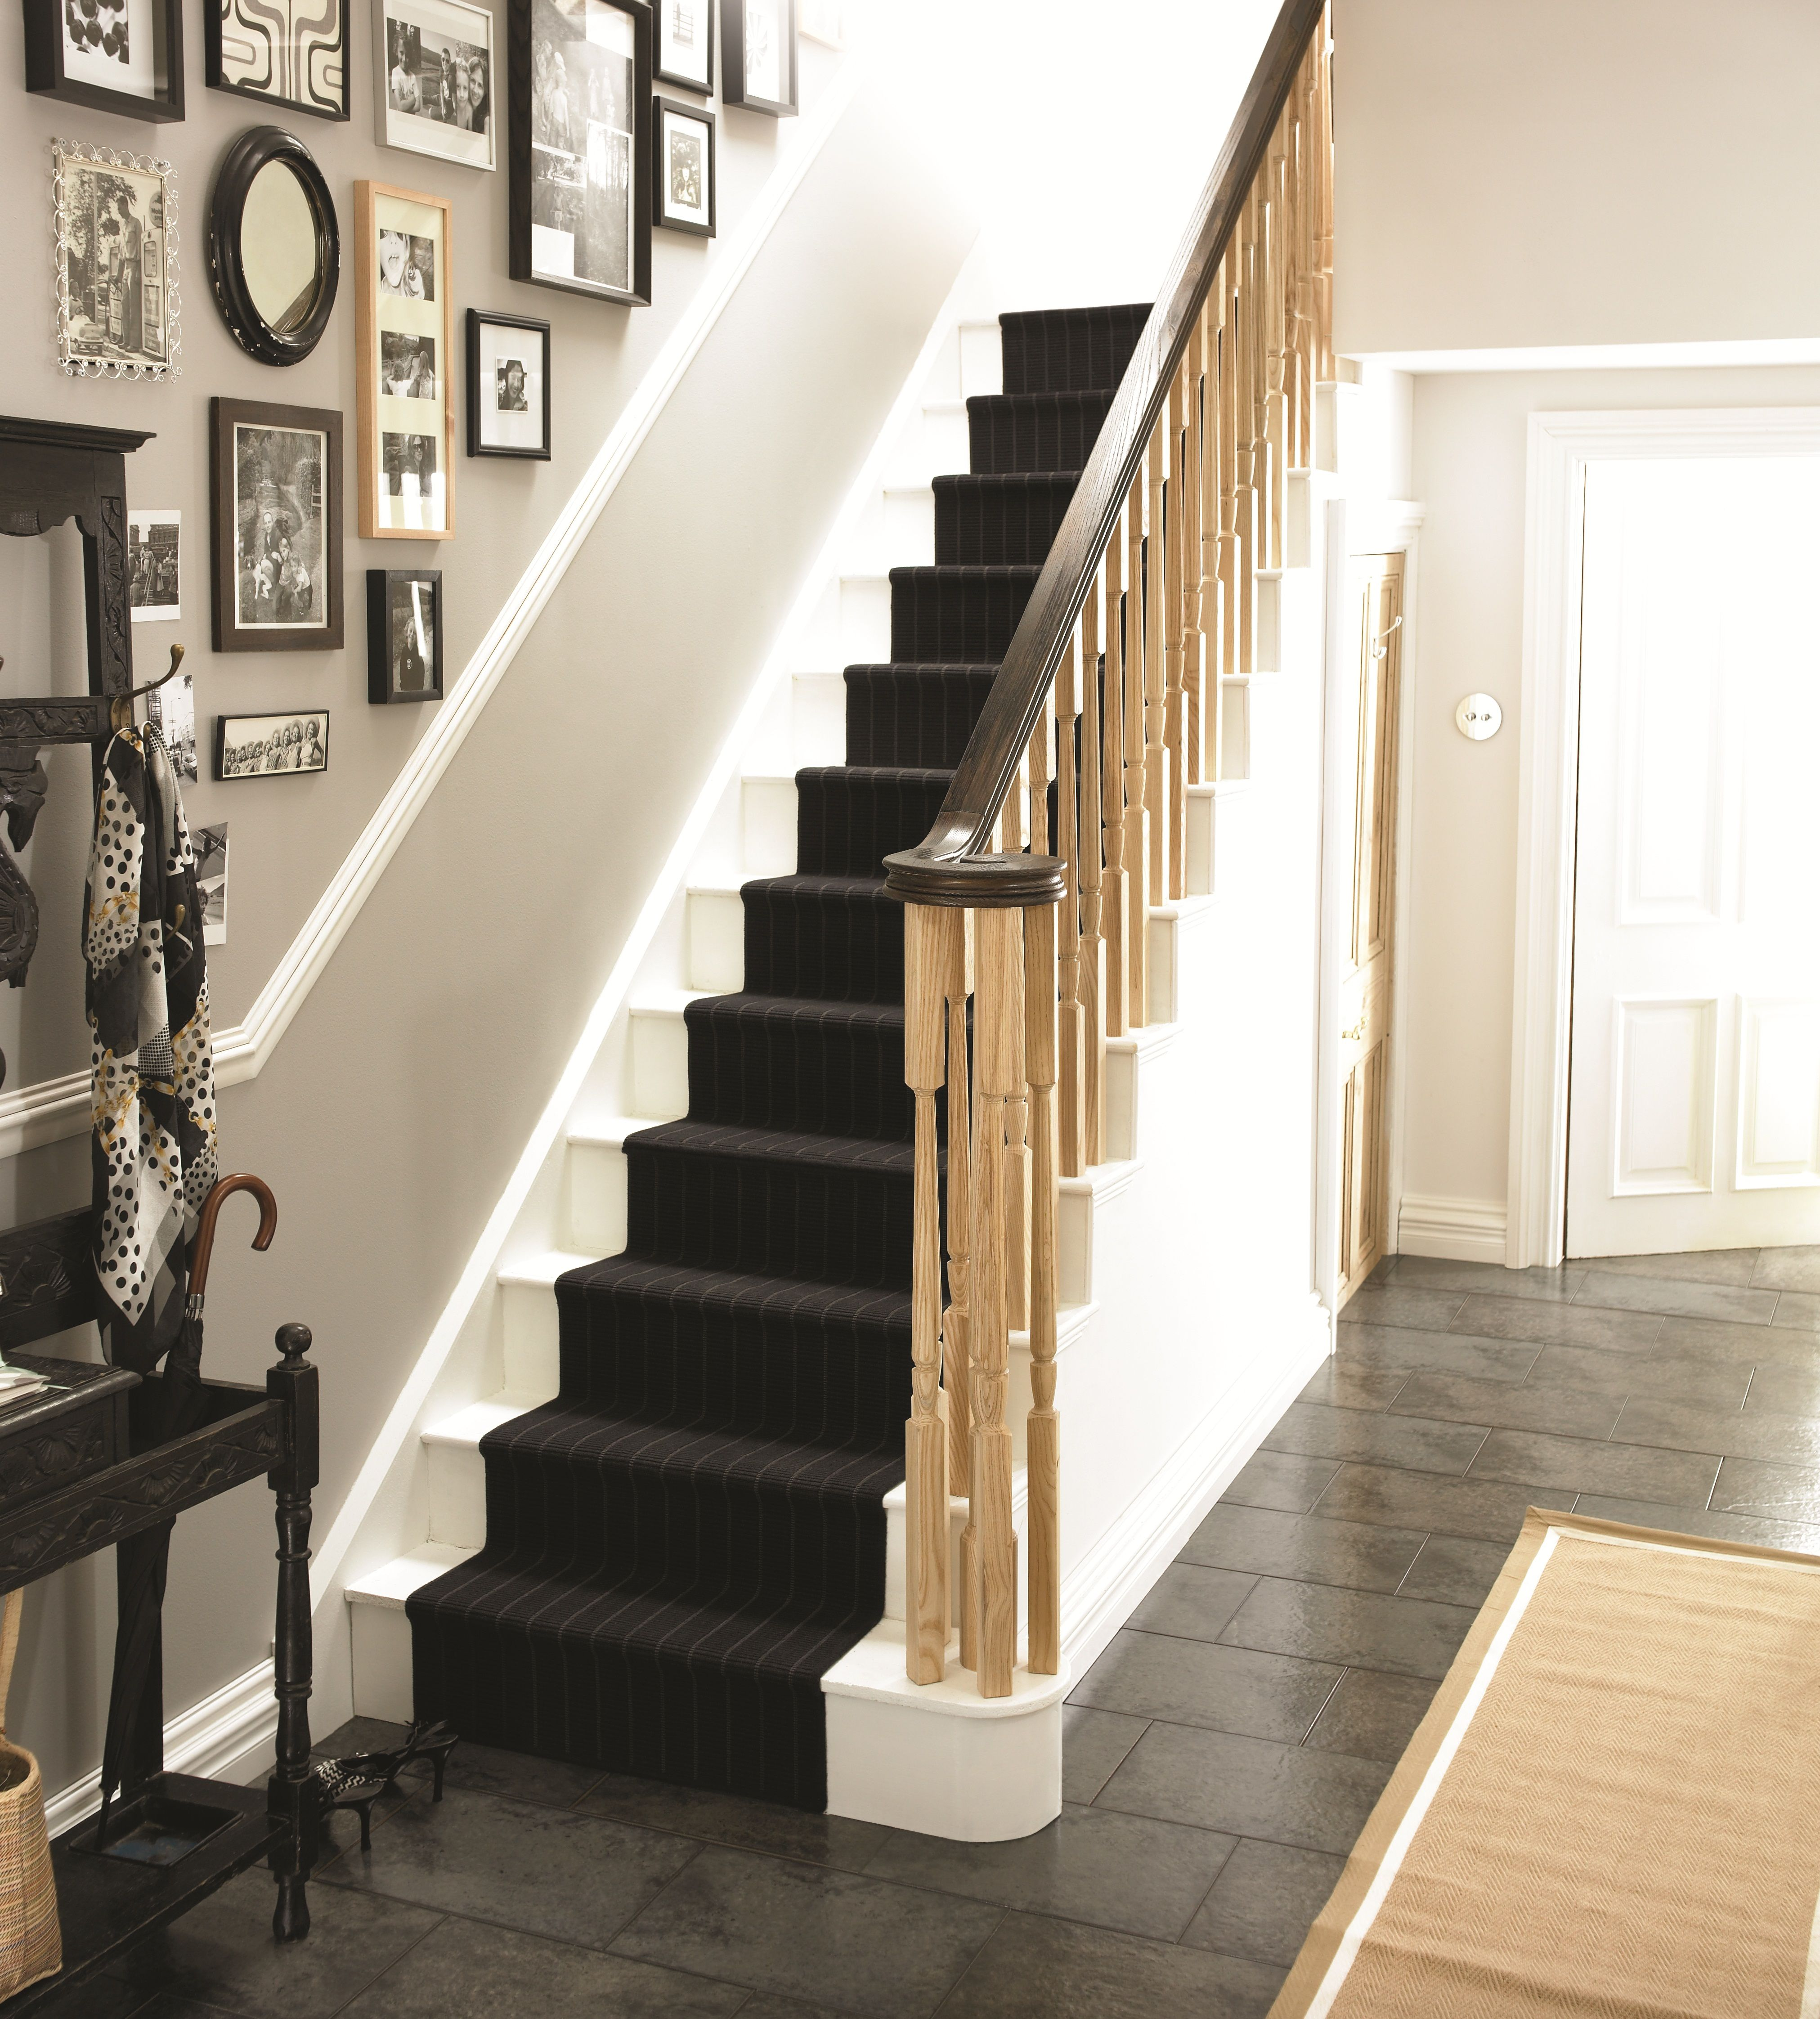 Decorating A Staircase Ideas Inspiration: Richard Burbidge. First Impressions Count: Your Hallway Is